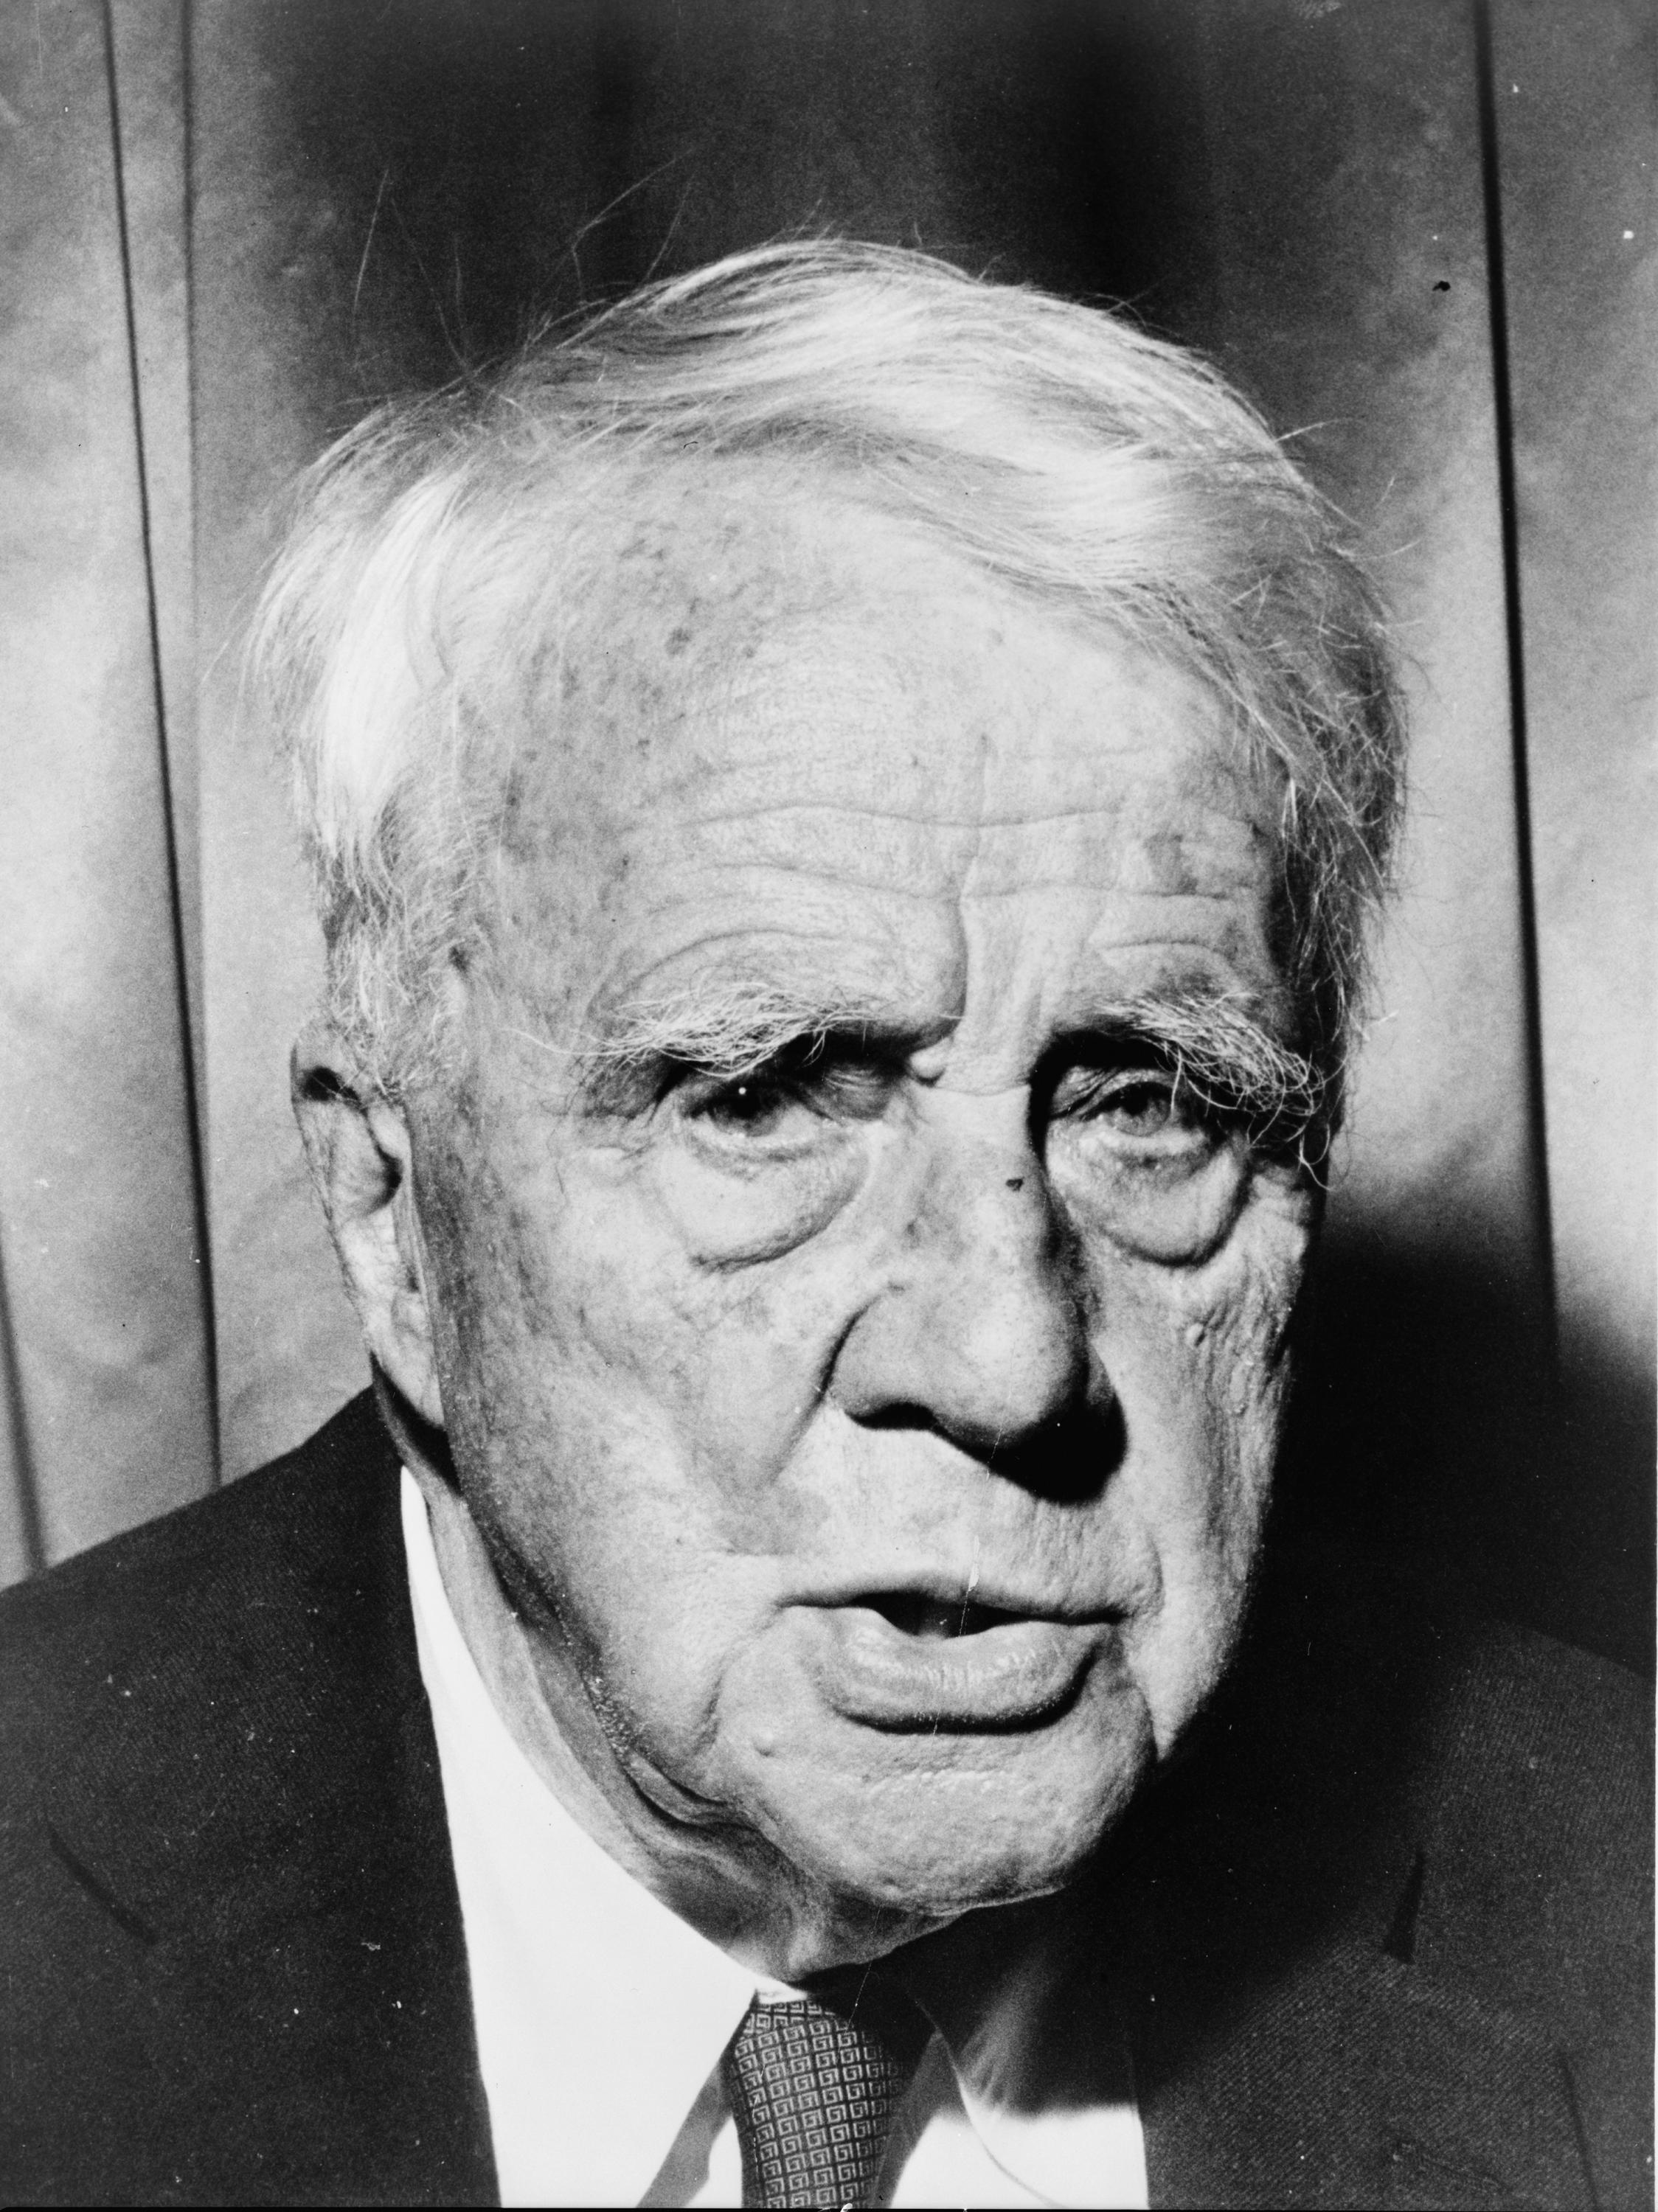 robert frost Shop for the perfect robert frost gift from our wide selection of designs, or create your own personalized gifts.